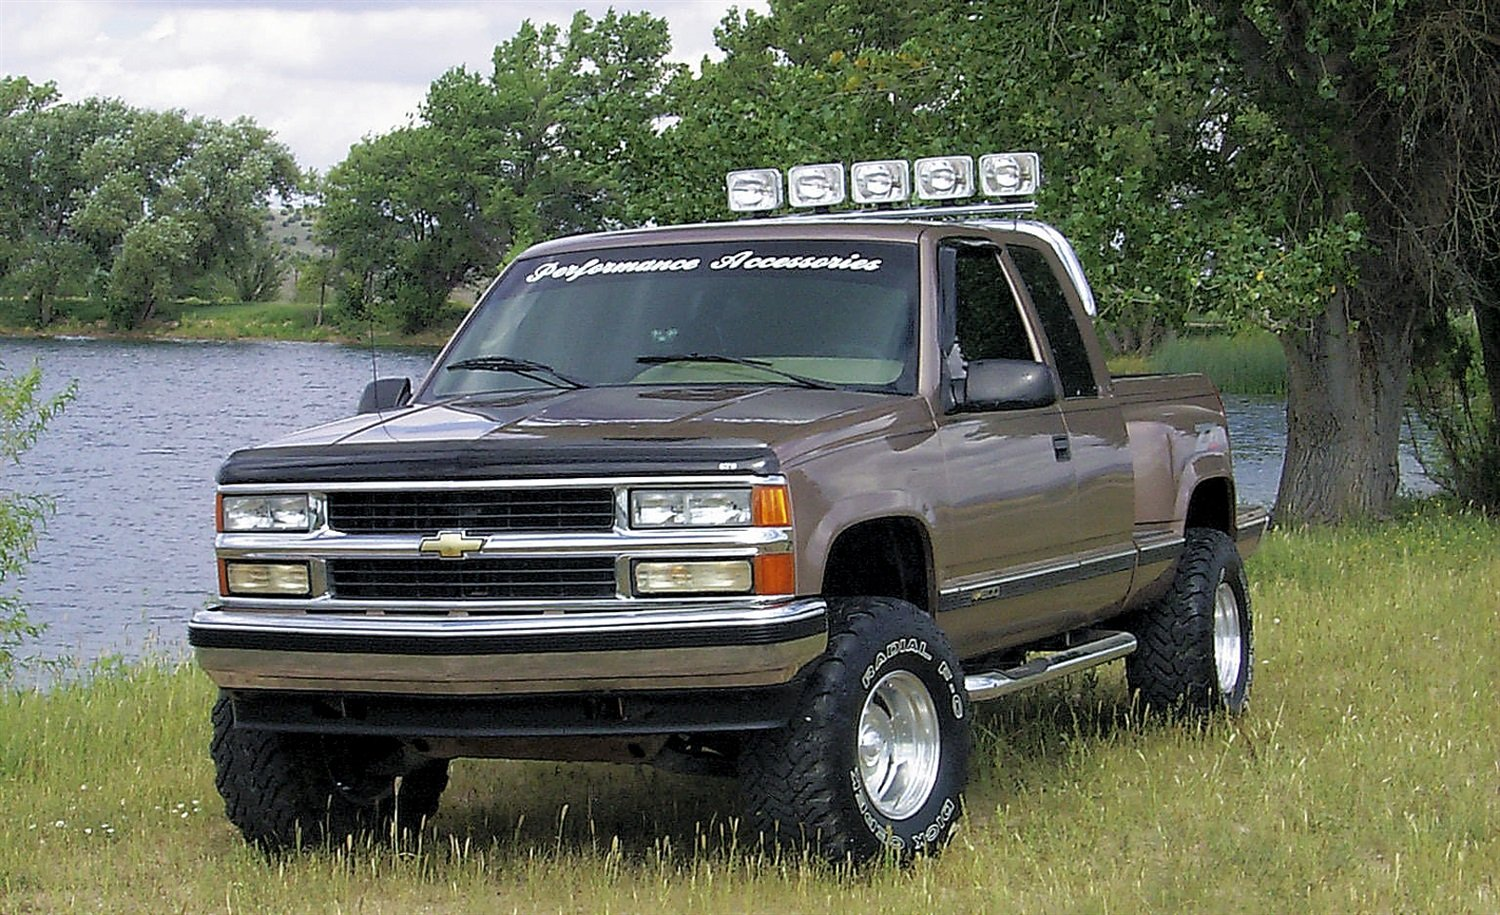 Blazer 94 chevy s10 blazer : Amazon.com: Performance Accessories (113) Body Lift Kit for Chevy ...